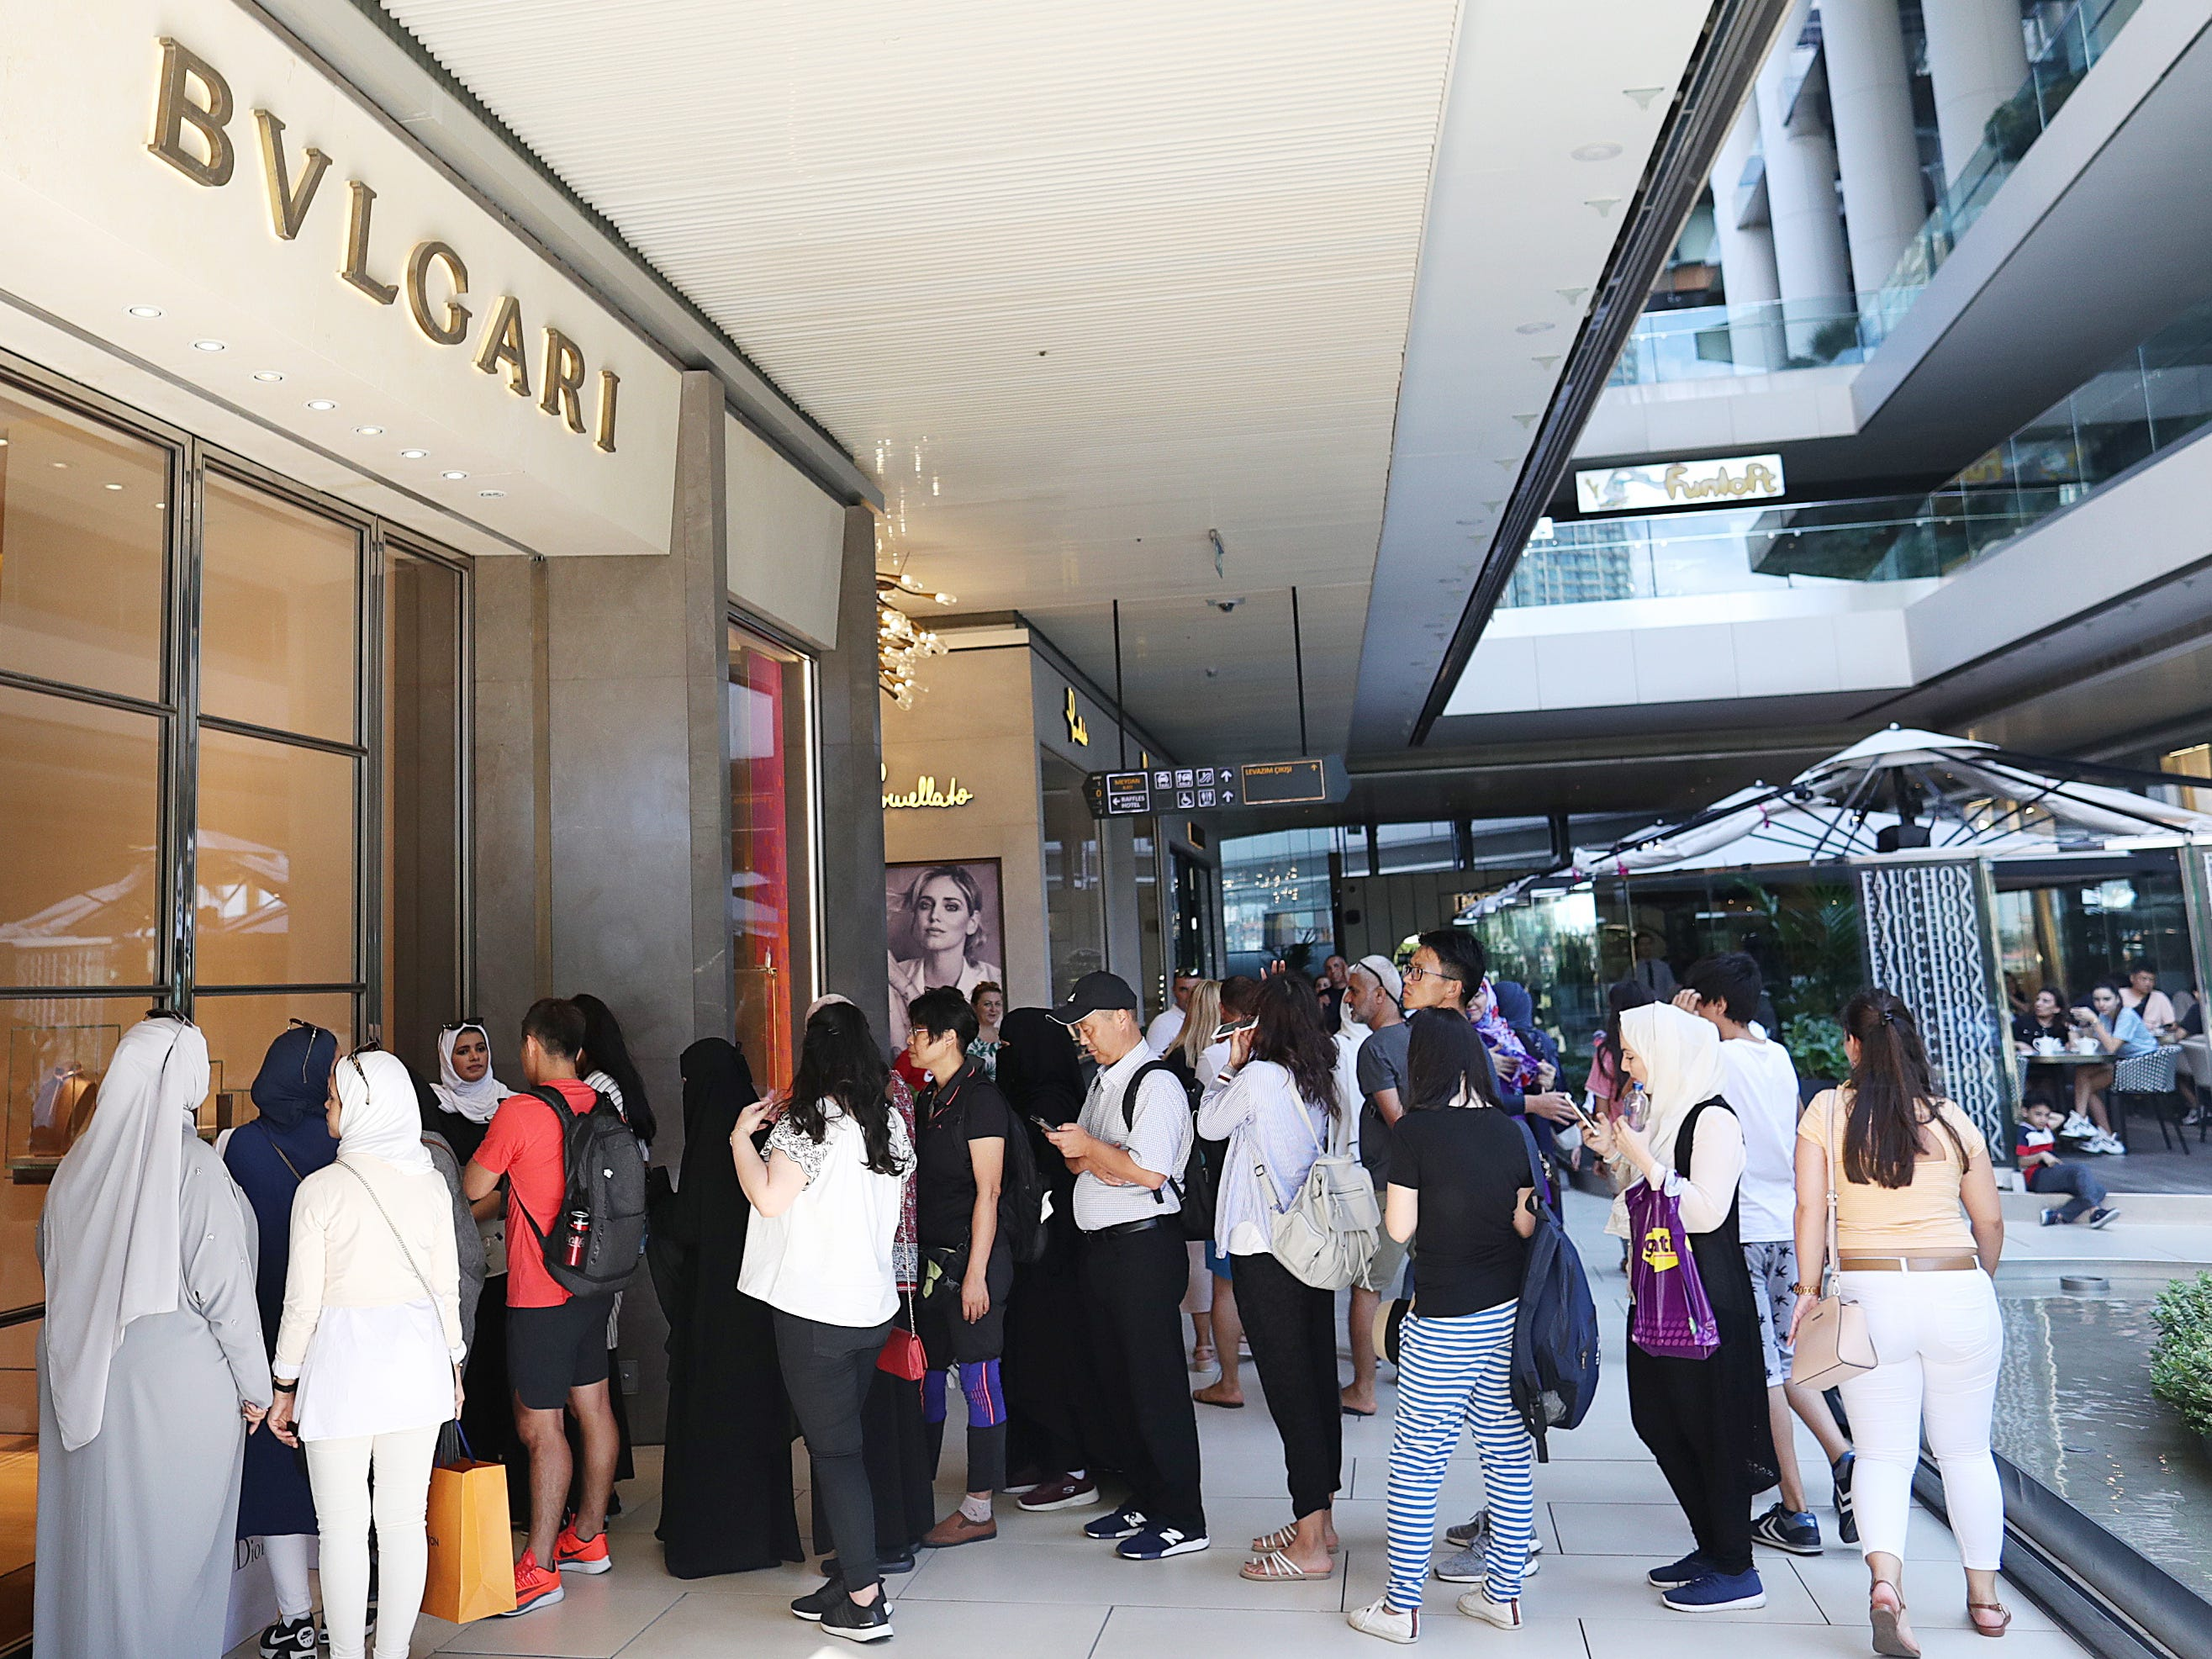 People line up to enter a Bulgari shop in Istanbul, Aug. 15, 2018.